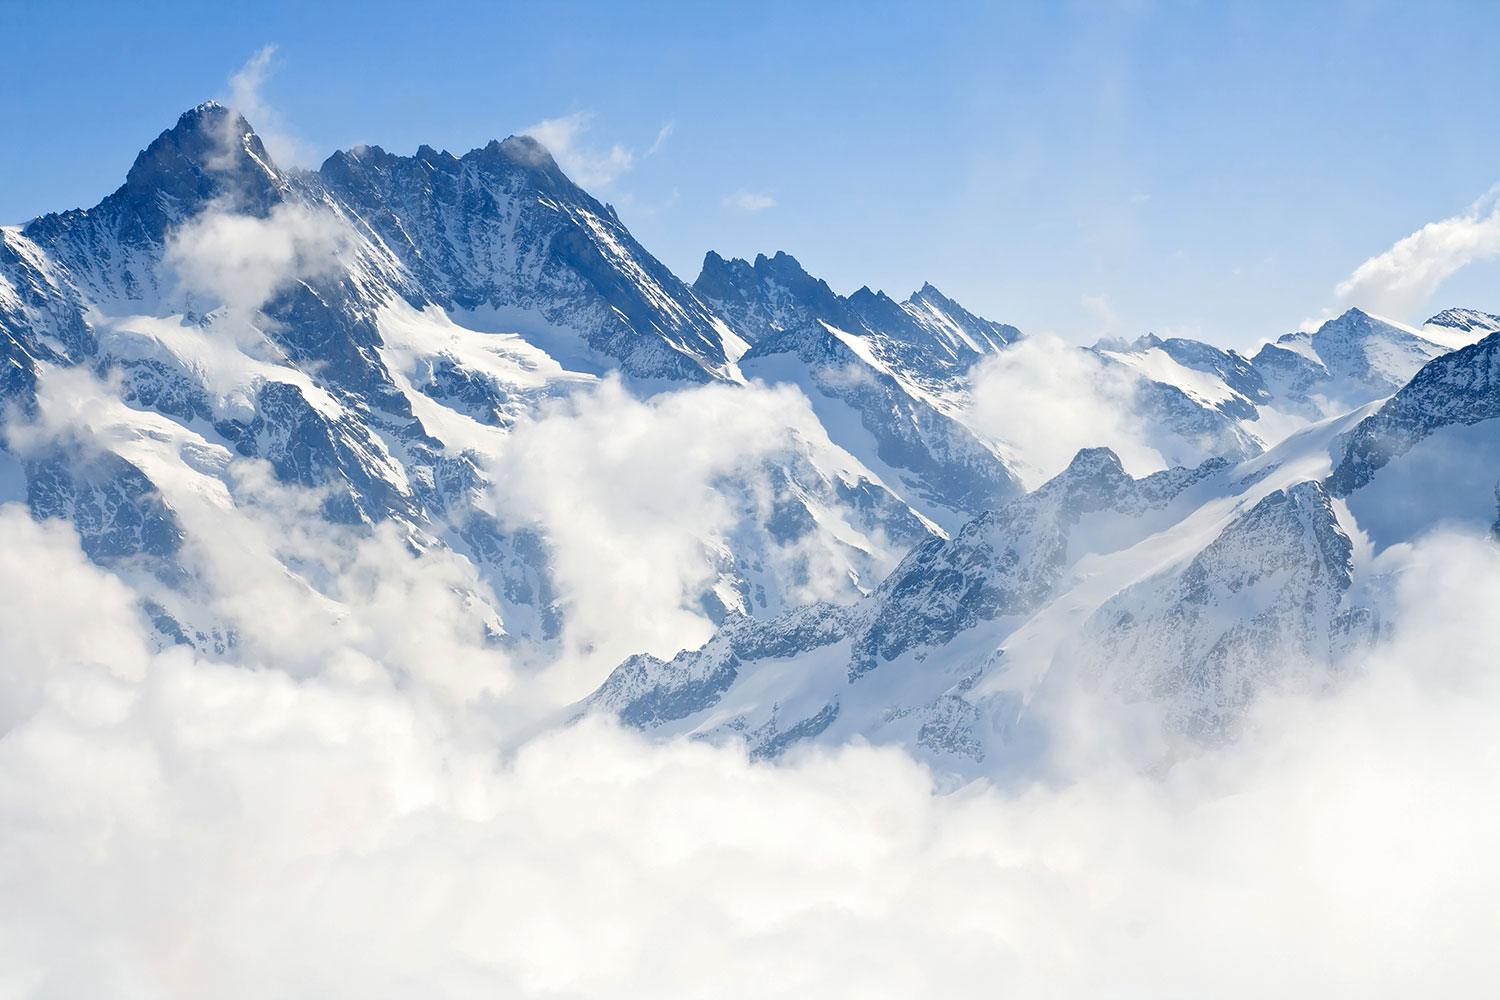 Wall Murals: Mountains above the clouds